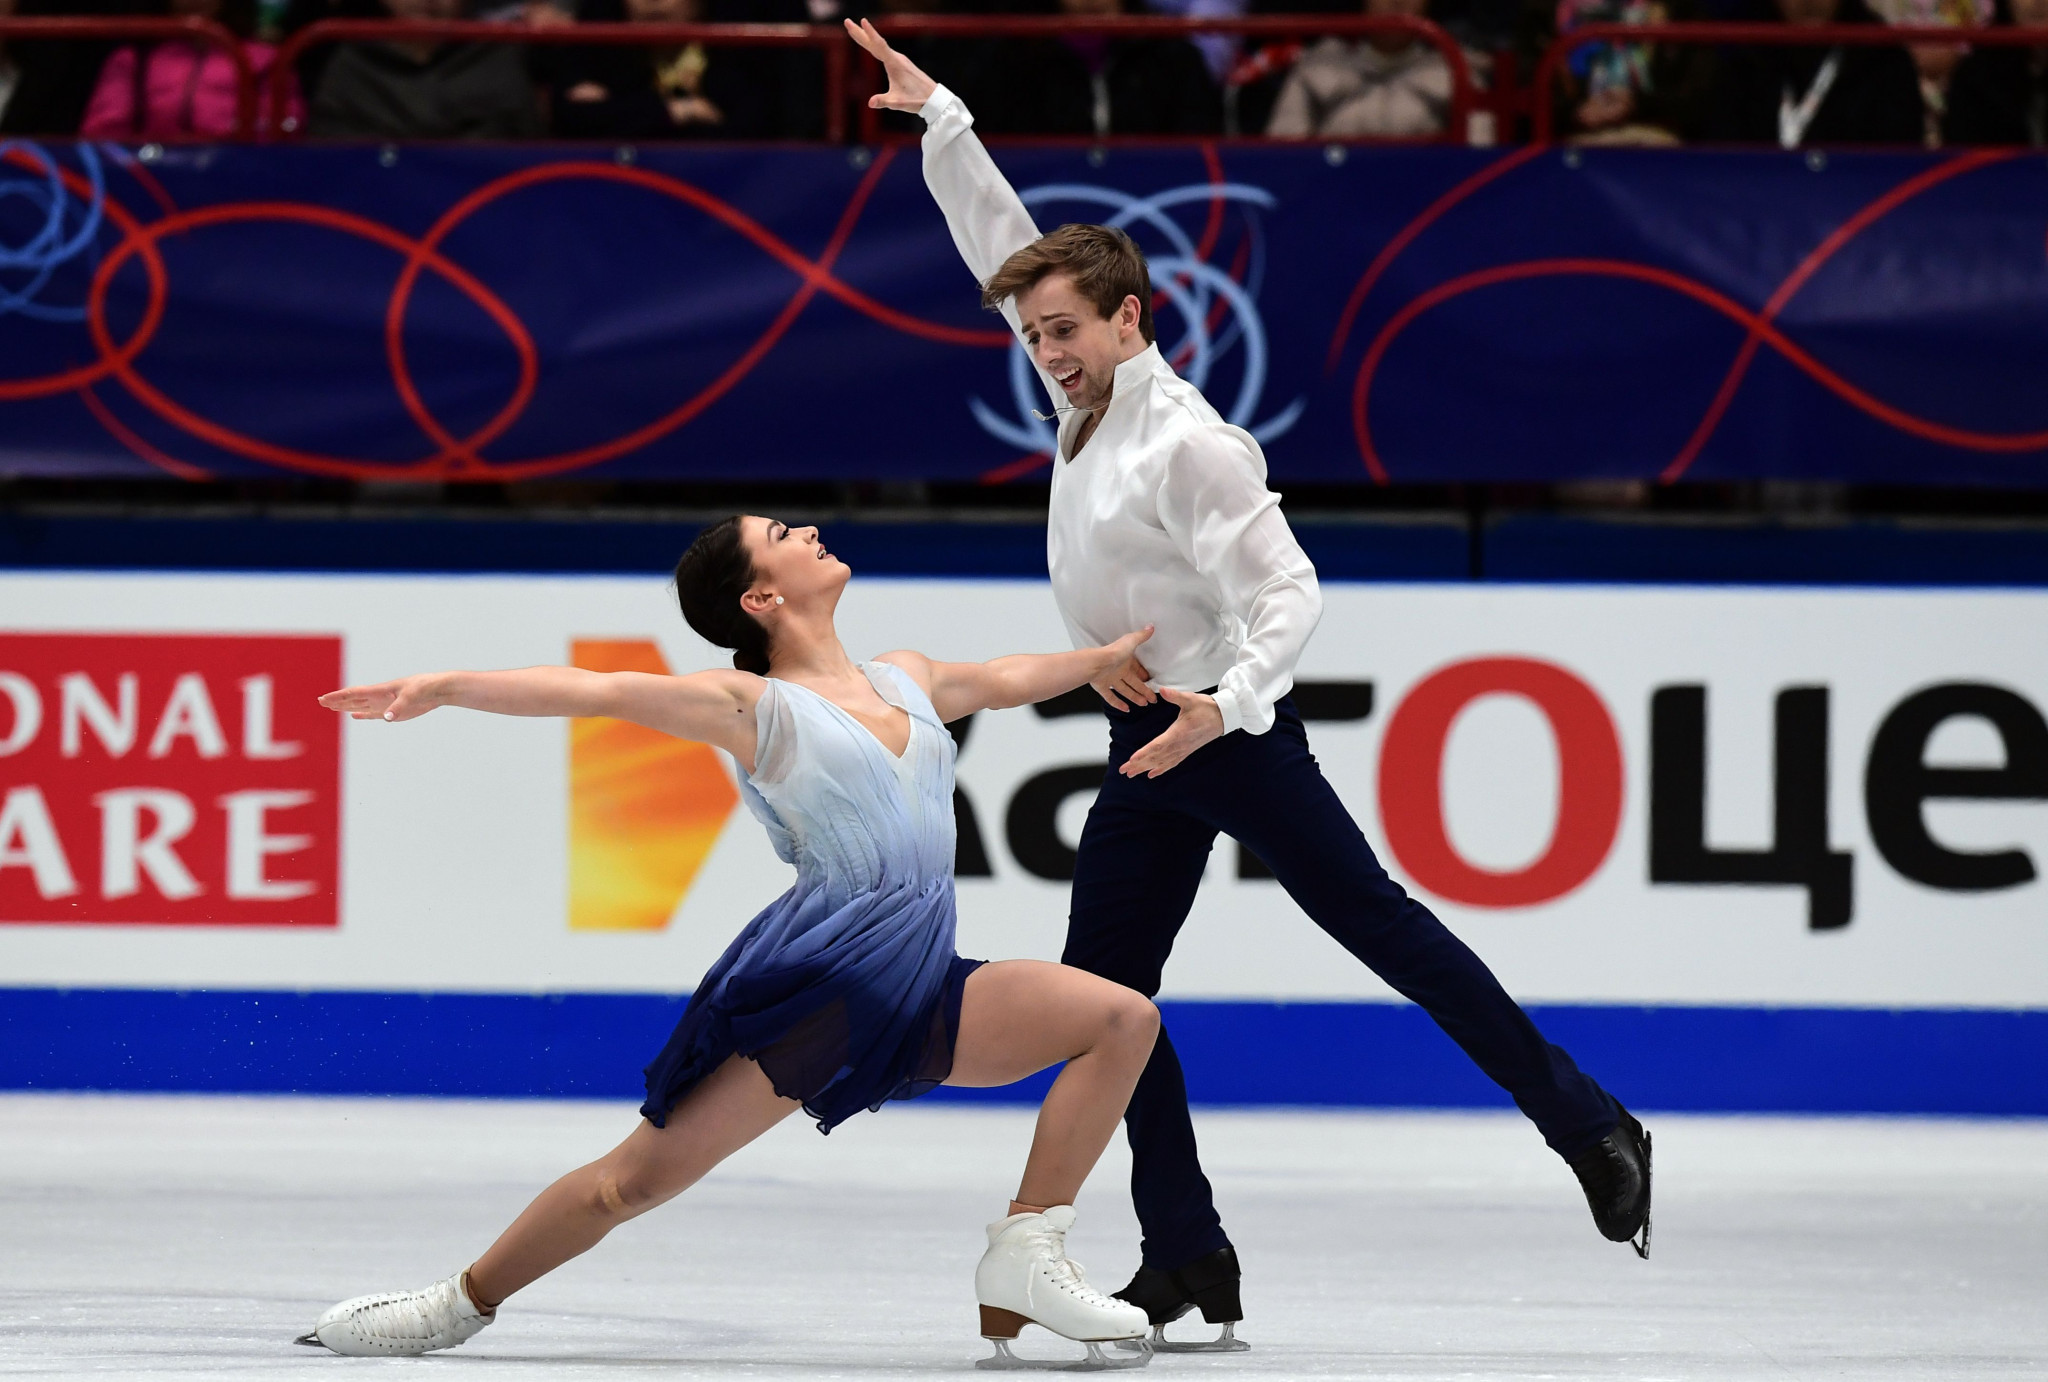 Kaitlin Hawayek and Jean-Luc Baker of United States won the Four Continents Ice Dancing title  this year in Taipei ©Getty Images